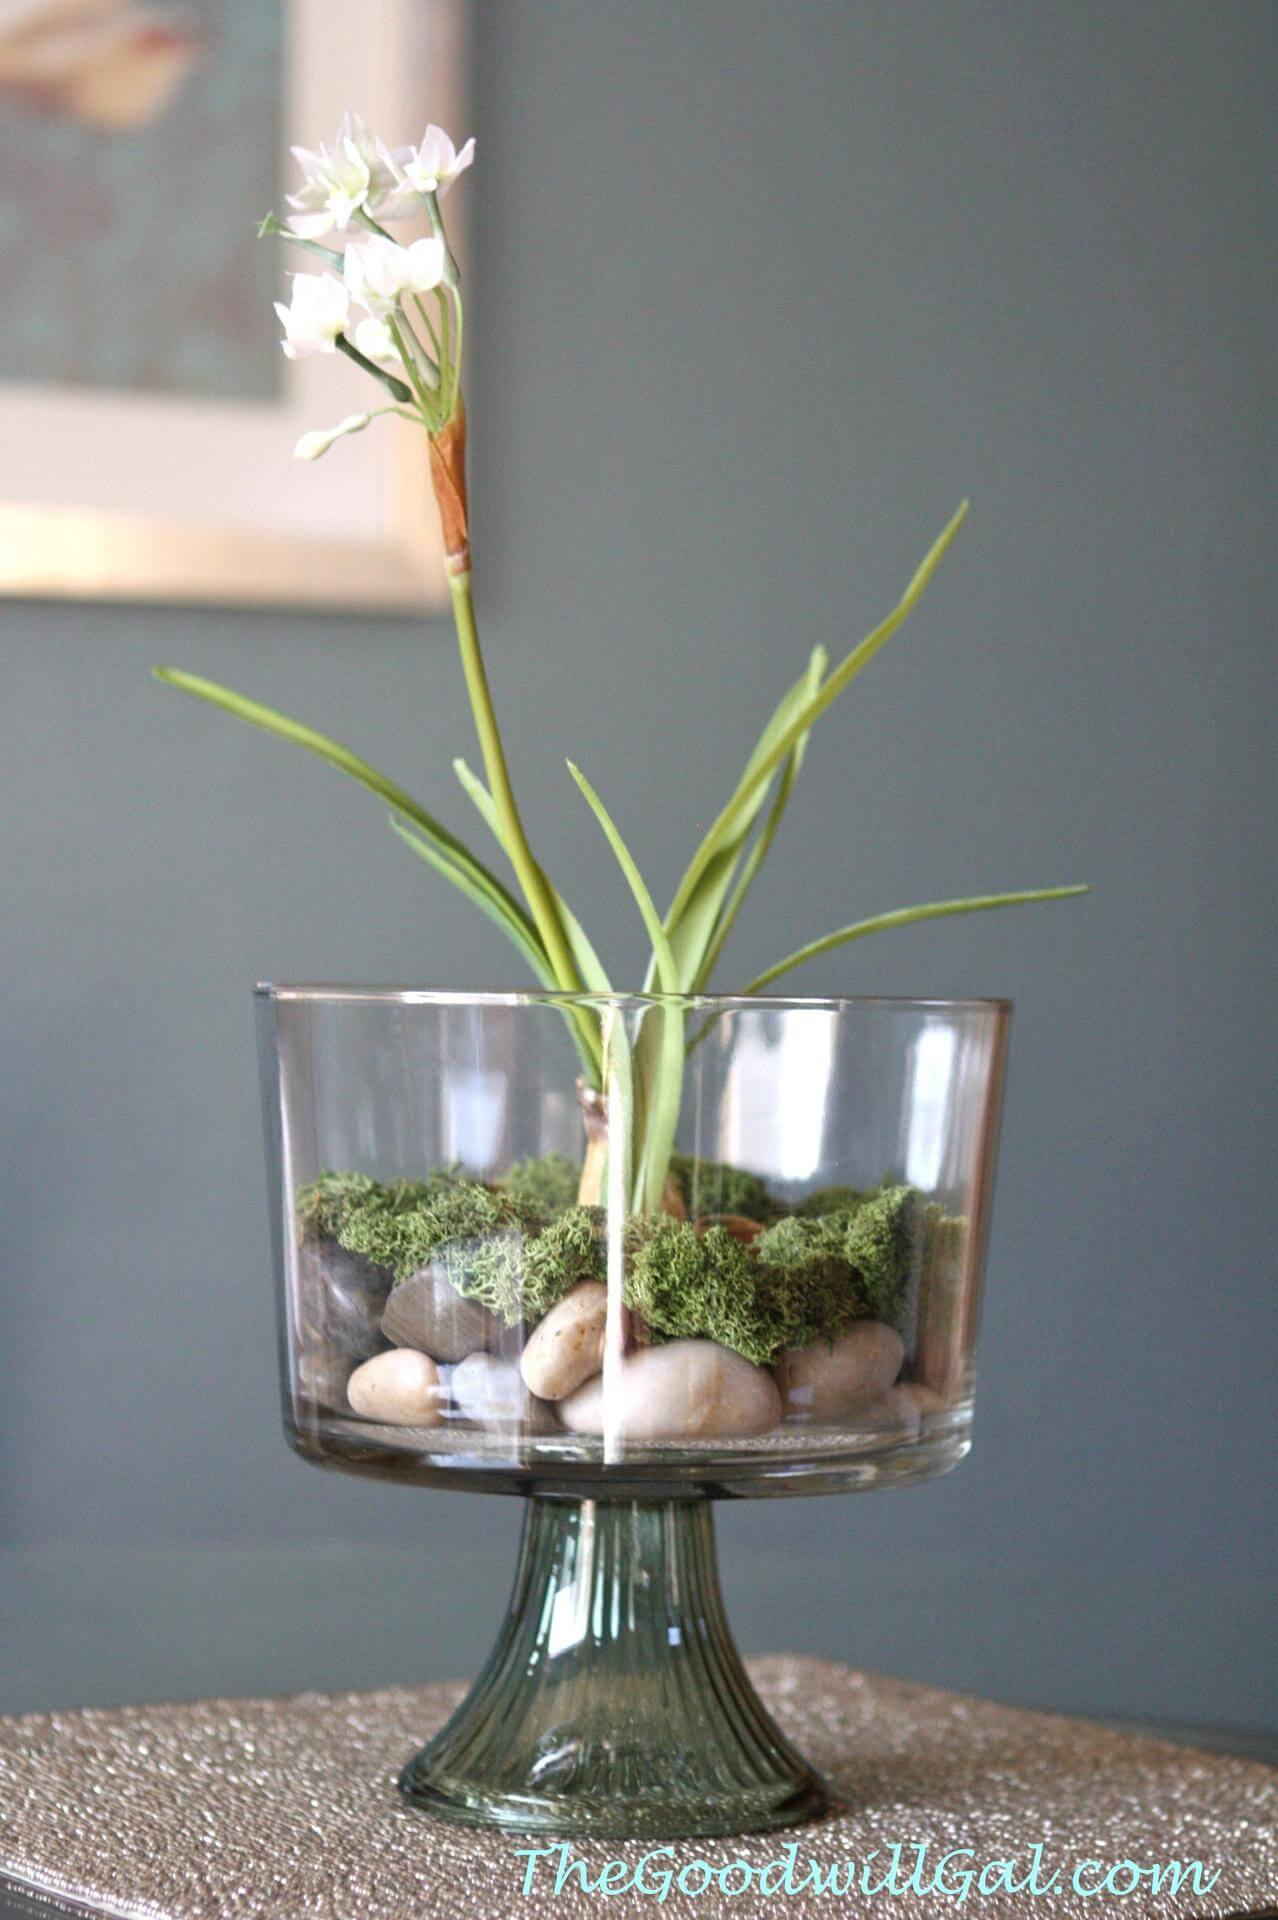 Centerpiece Simplicity with a Single Paperwhite